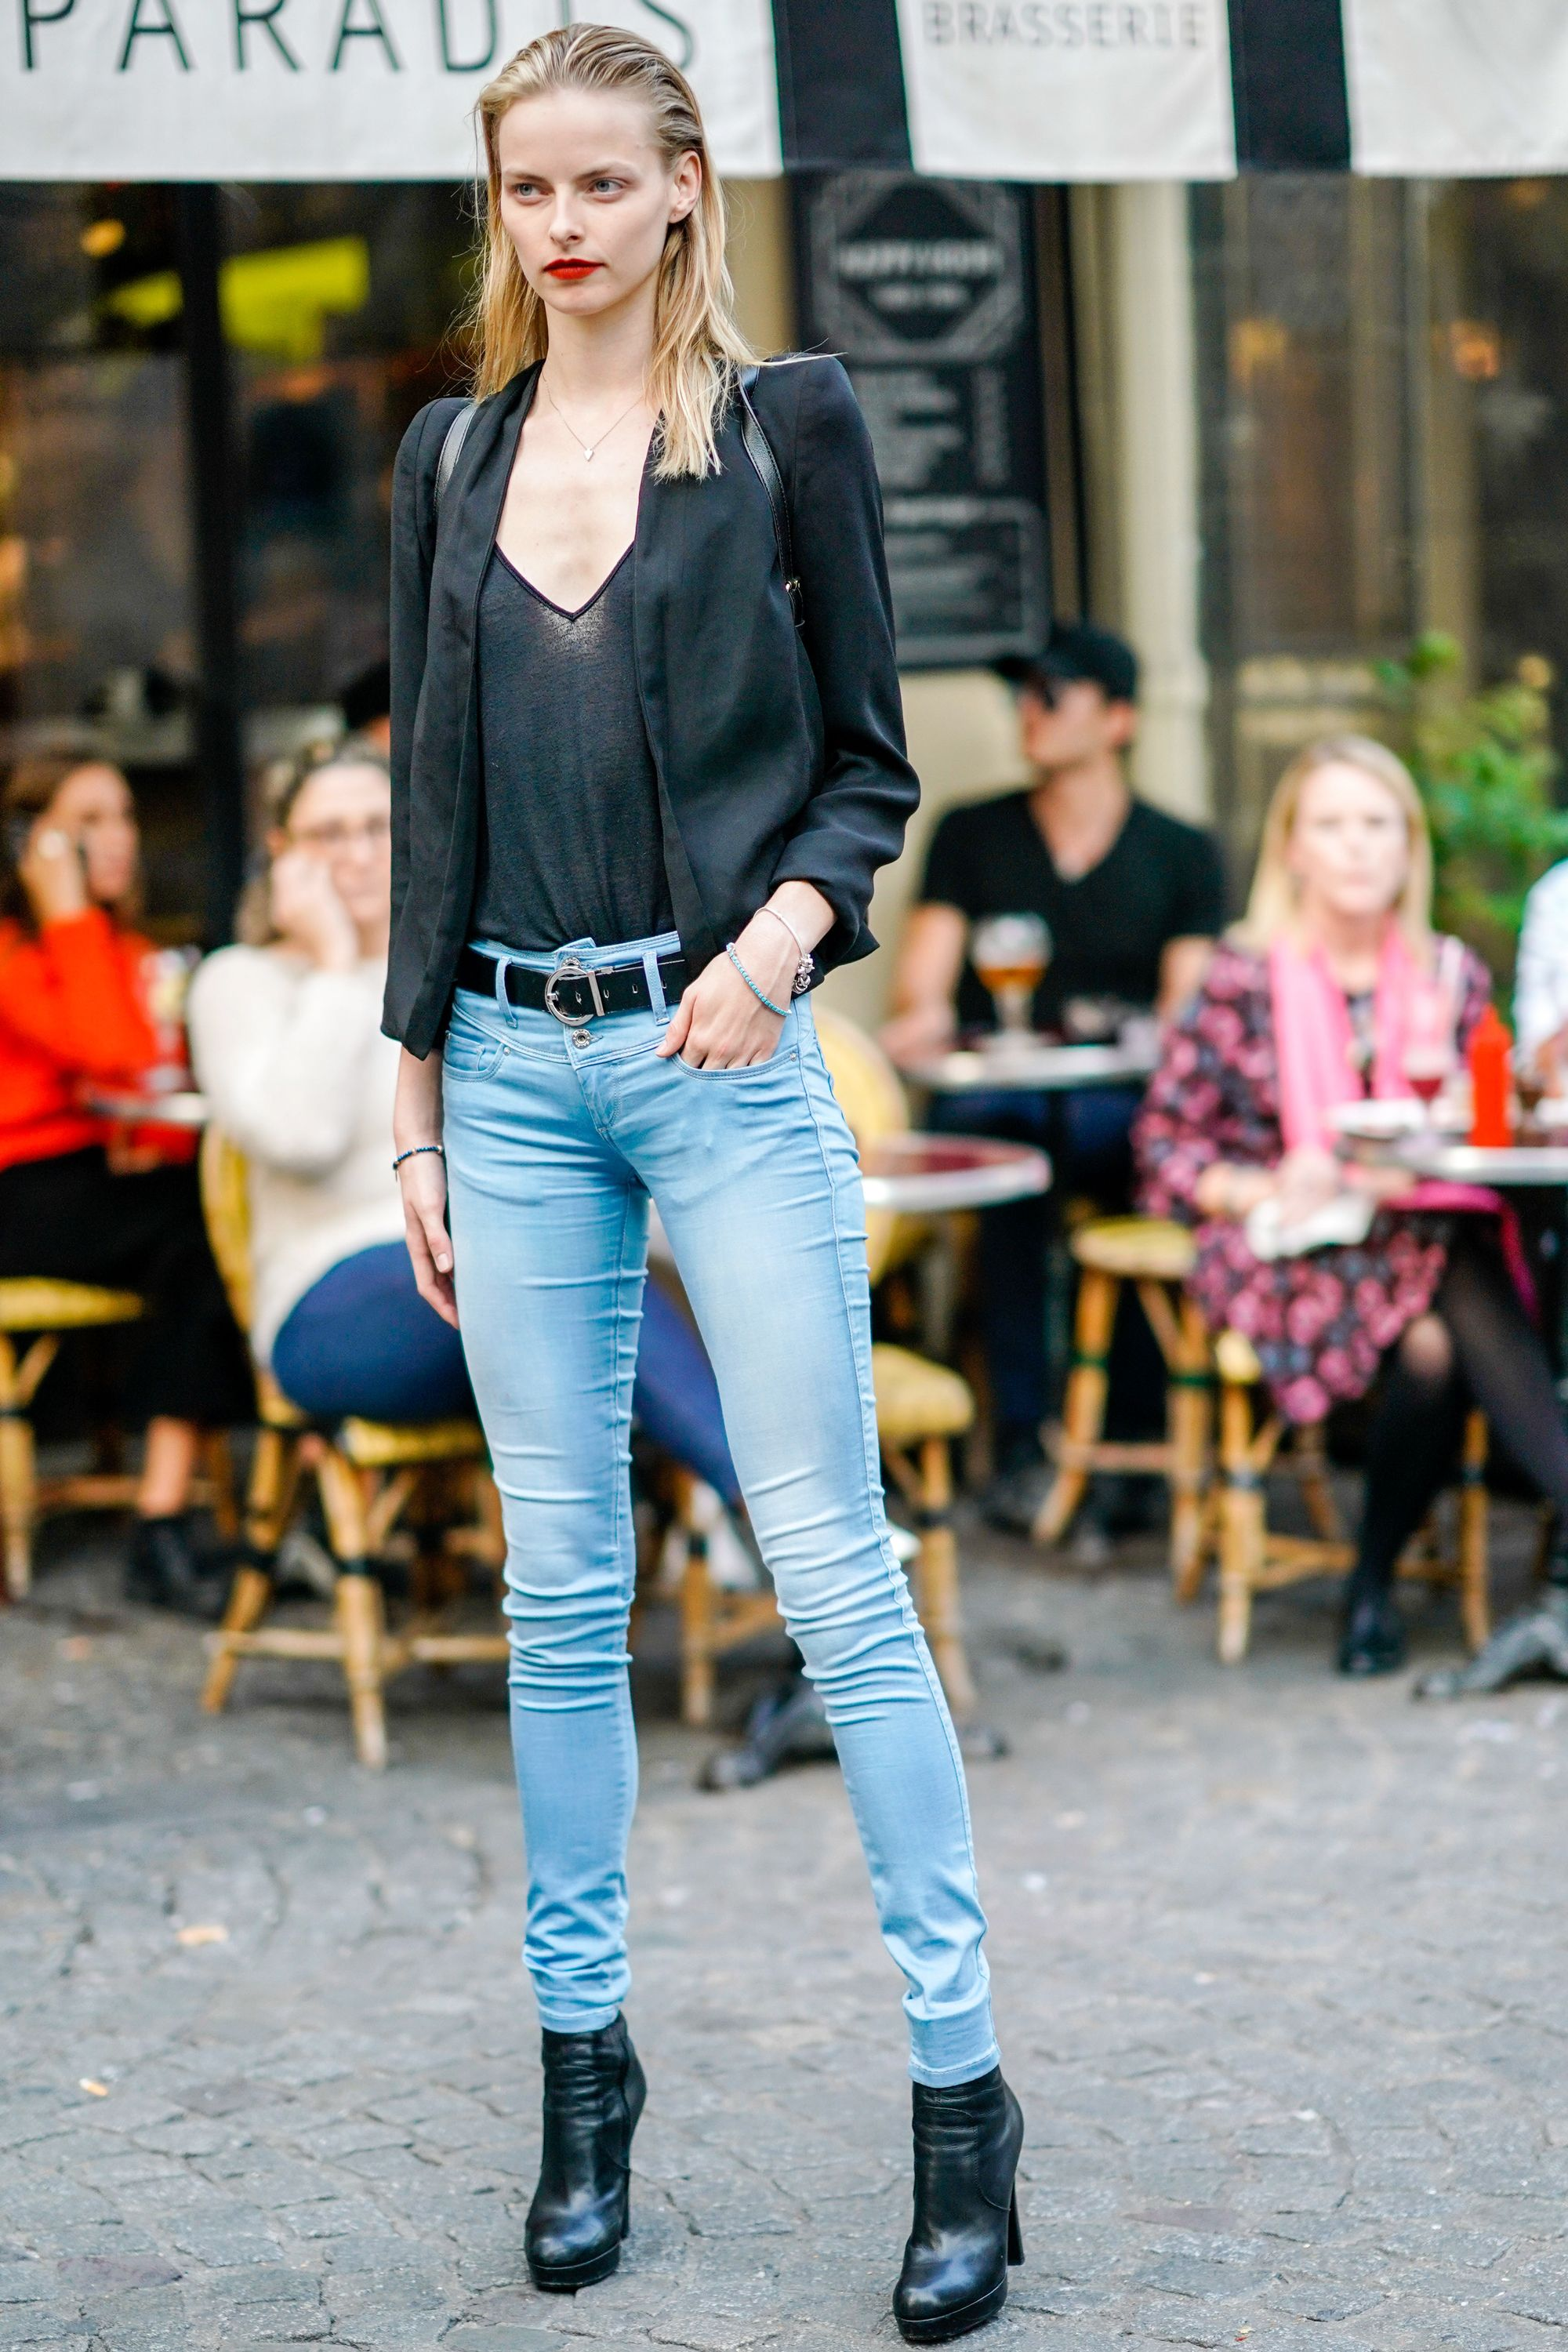 893f413b5 The 50 Best Fashion Tips of All Time - Know Your Stretch from InStyle.com